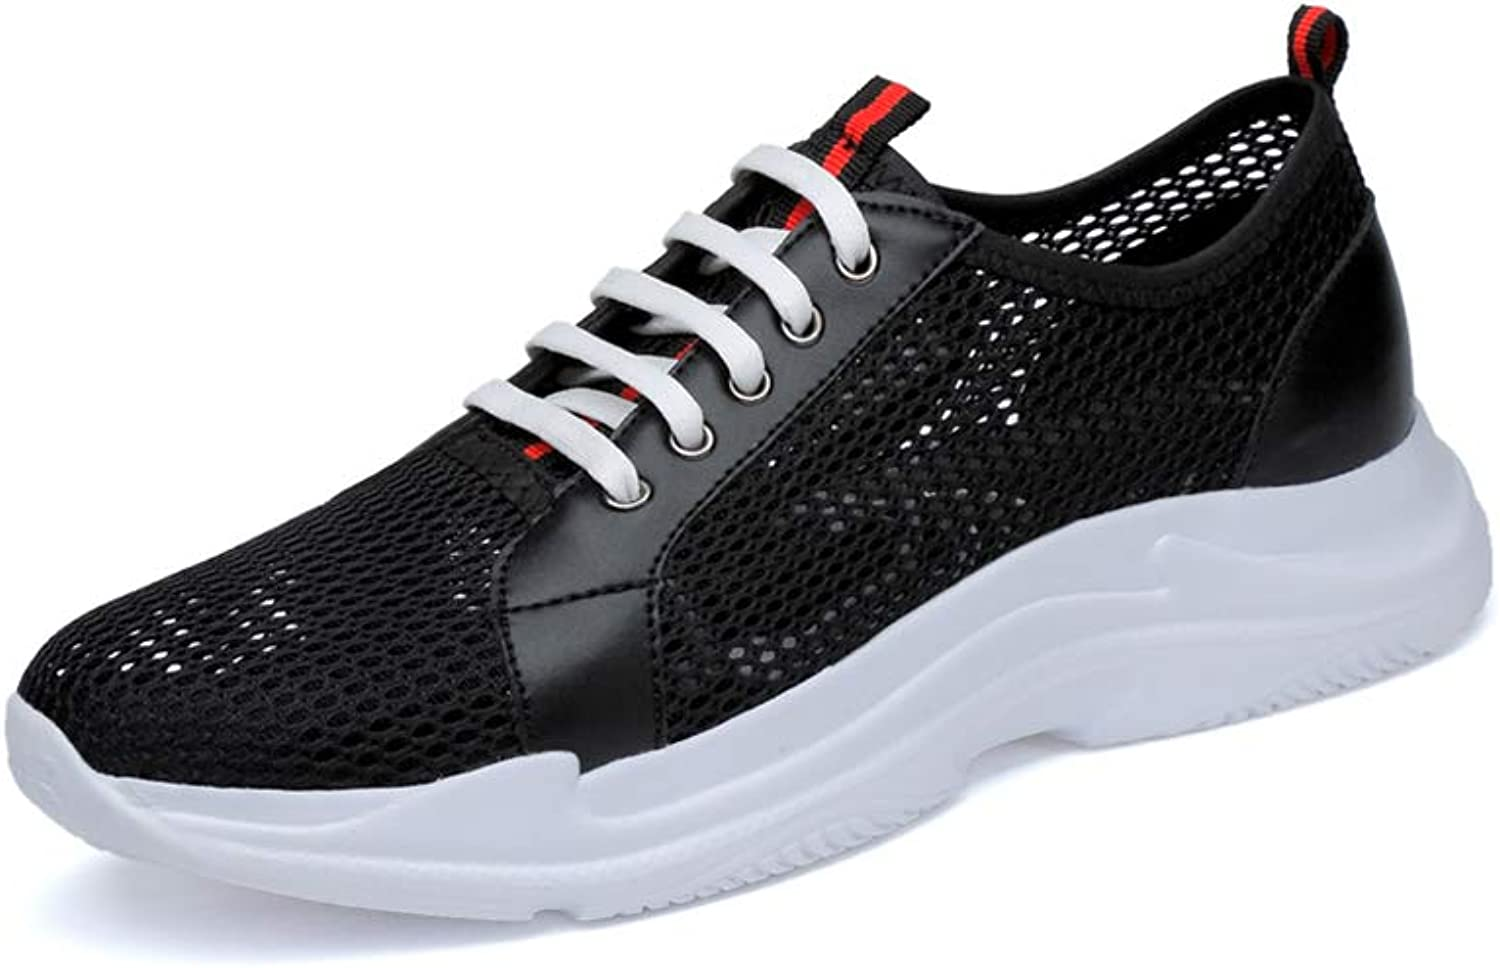 Men's Breathable Mesh shoes Non-slip Low help Casual shoes Outdoor Jogging Sports shoes Lightweight Training shoes,Black,43